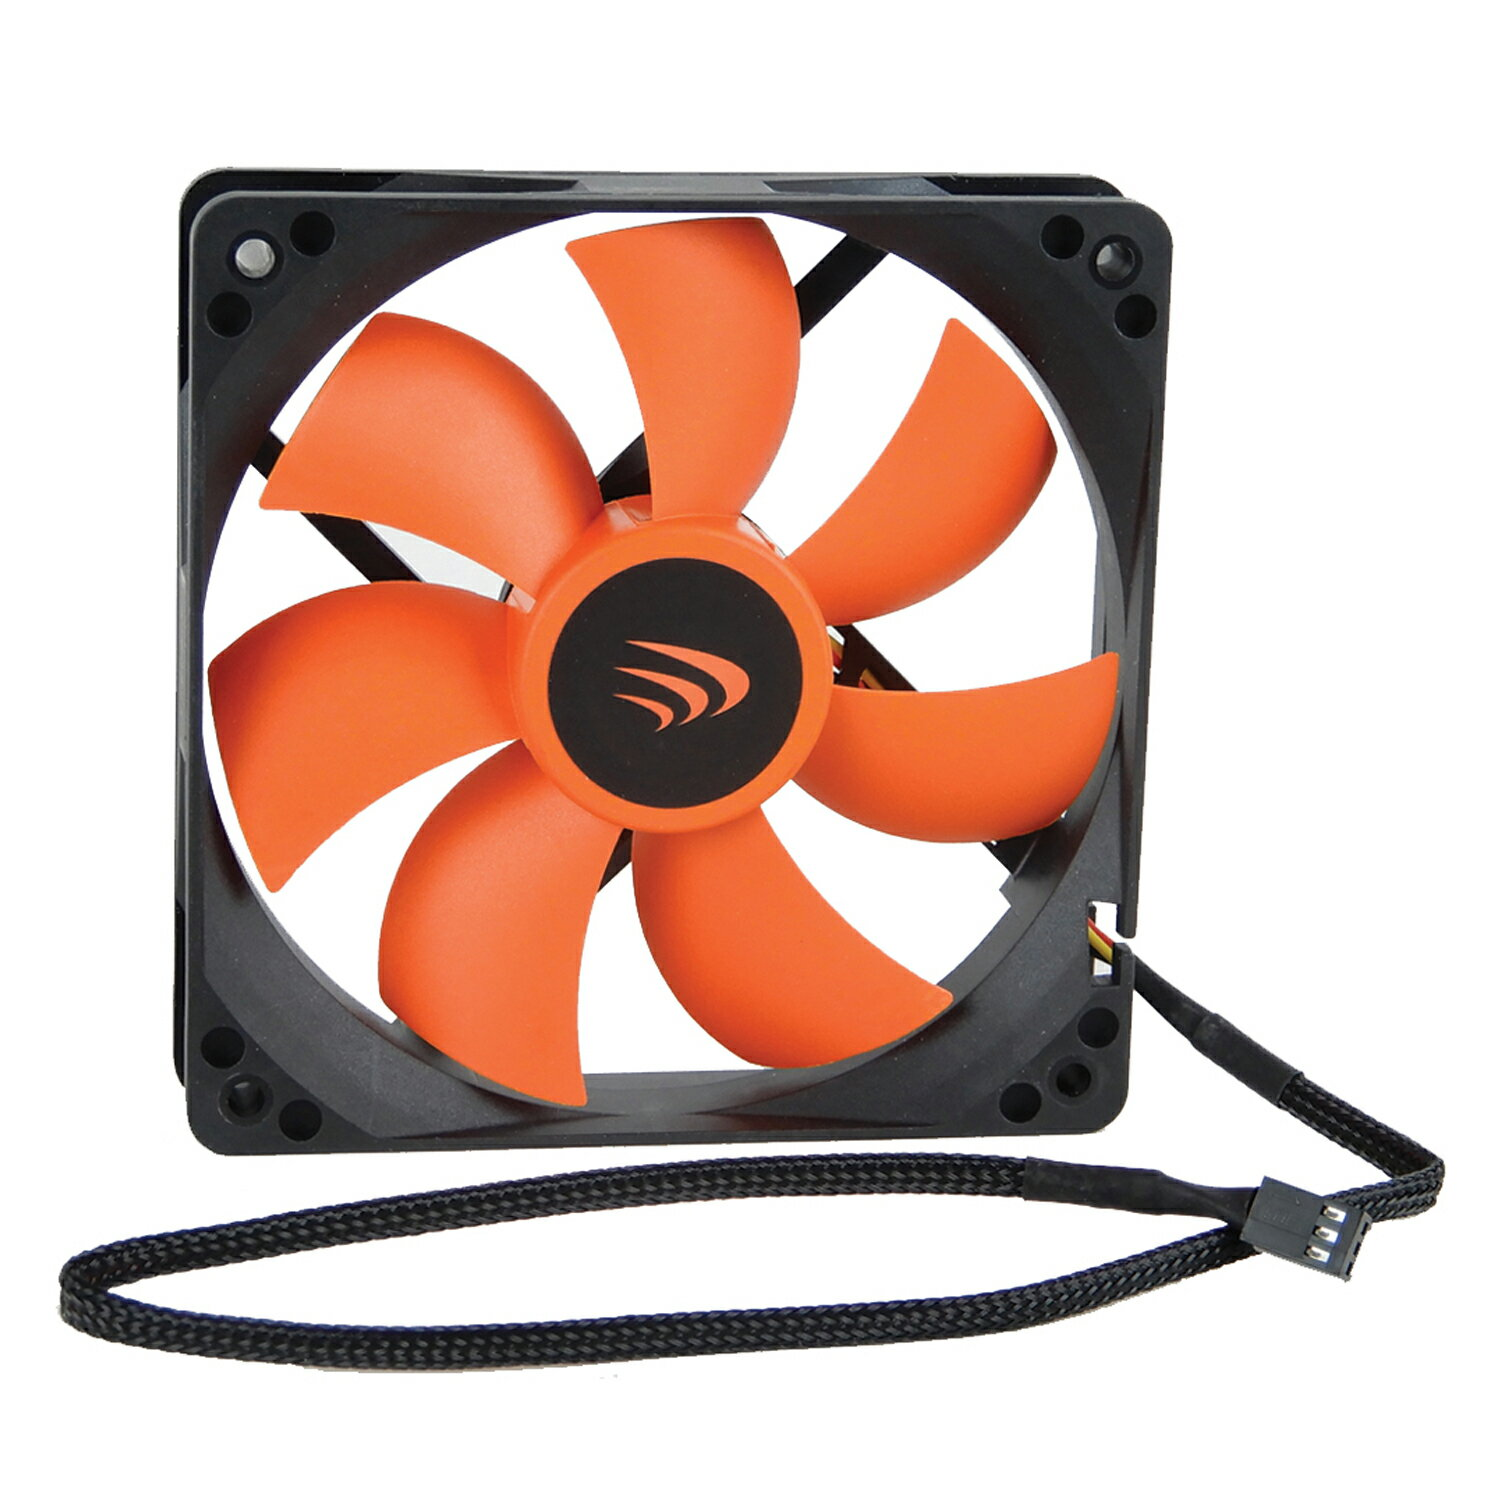 AAAwave 120mm Double ball bearing Silent Cooling Fan Compatible with CPU  Coolers, Water-Cooling Radiators, and PC Cases